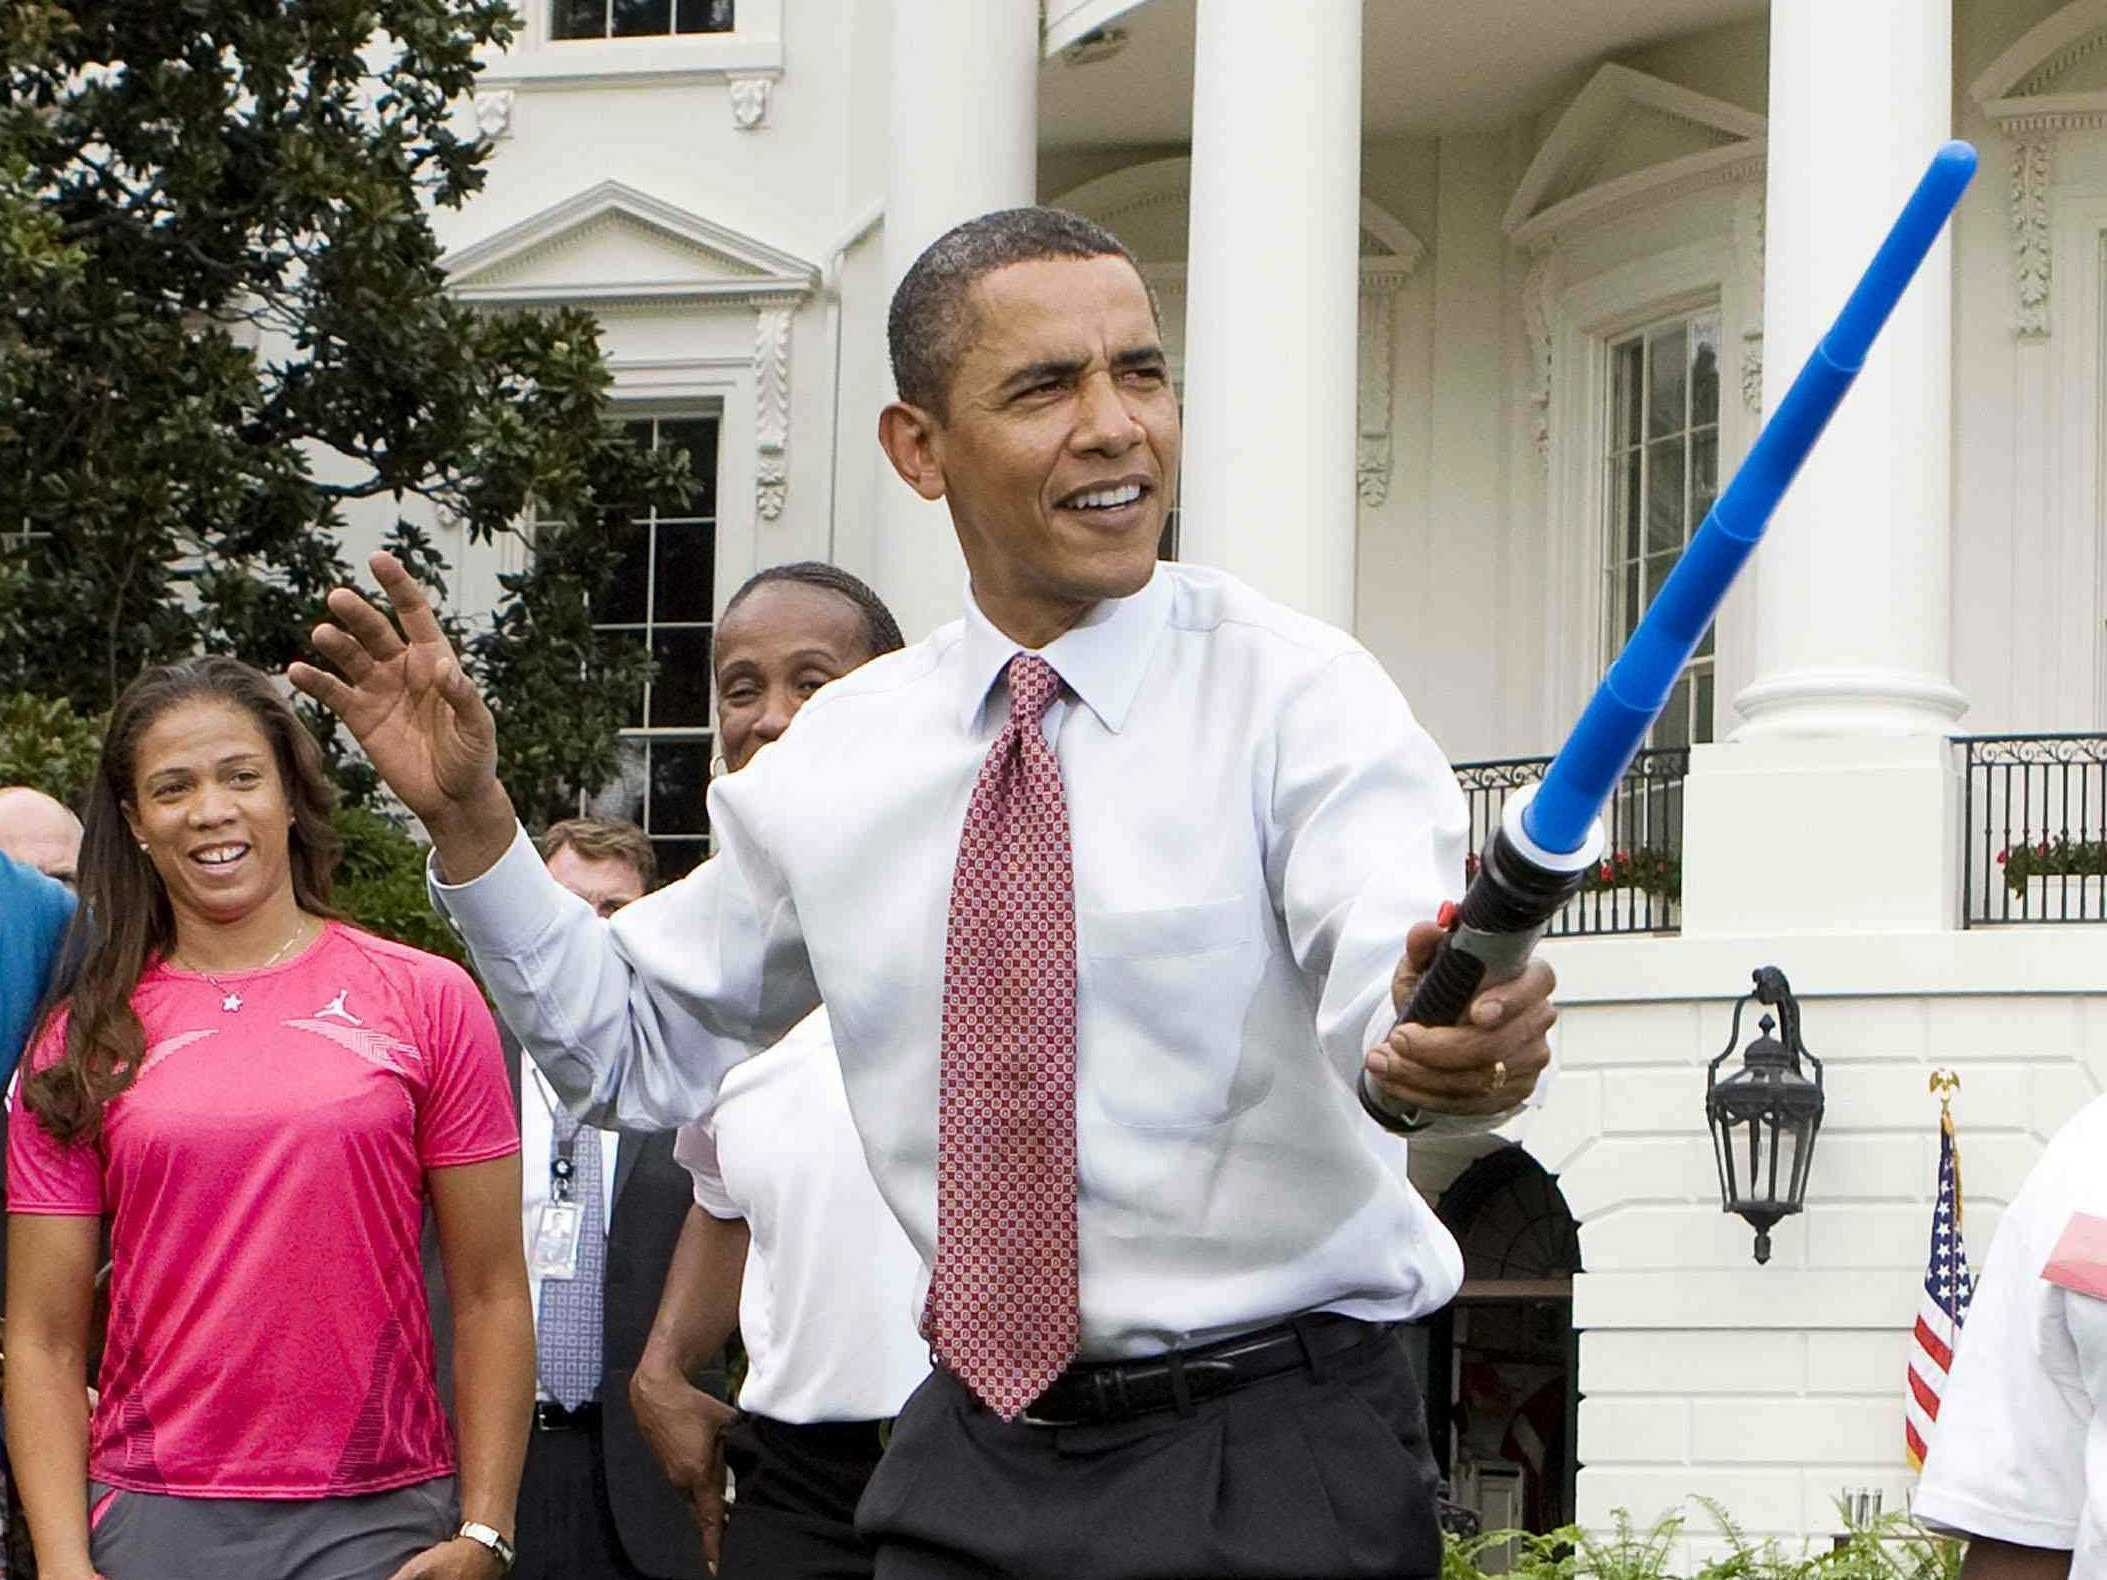 The Obamas Dance with R2-D2in Celebration of